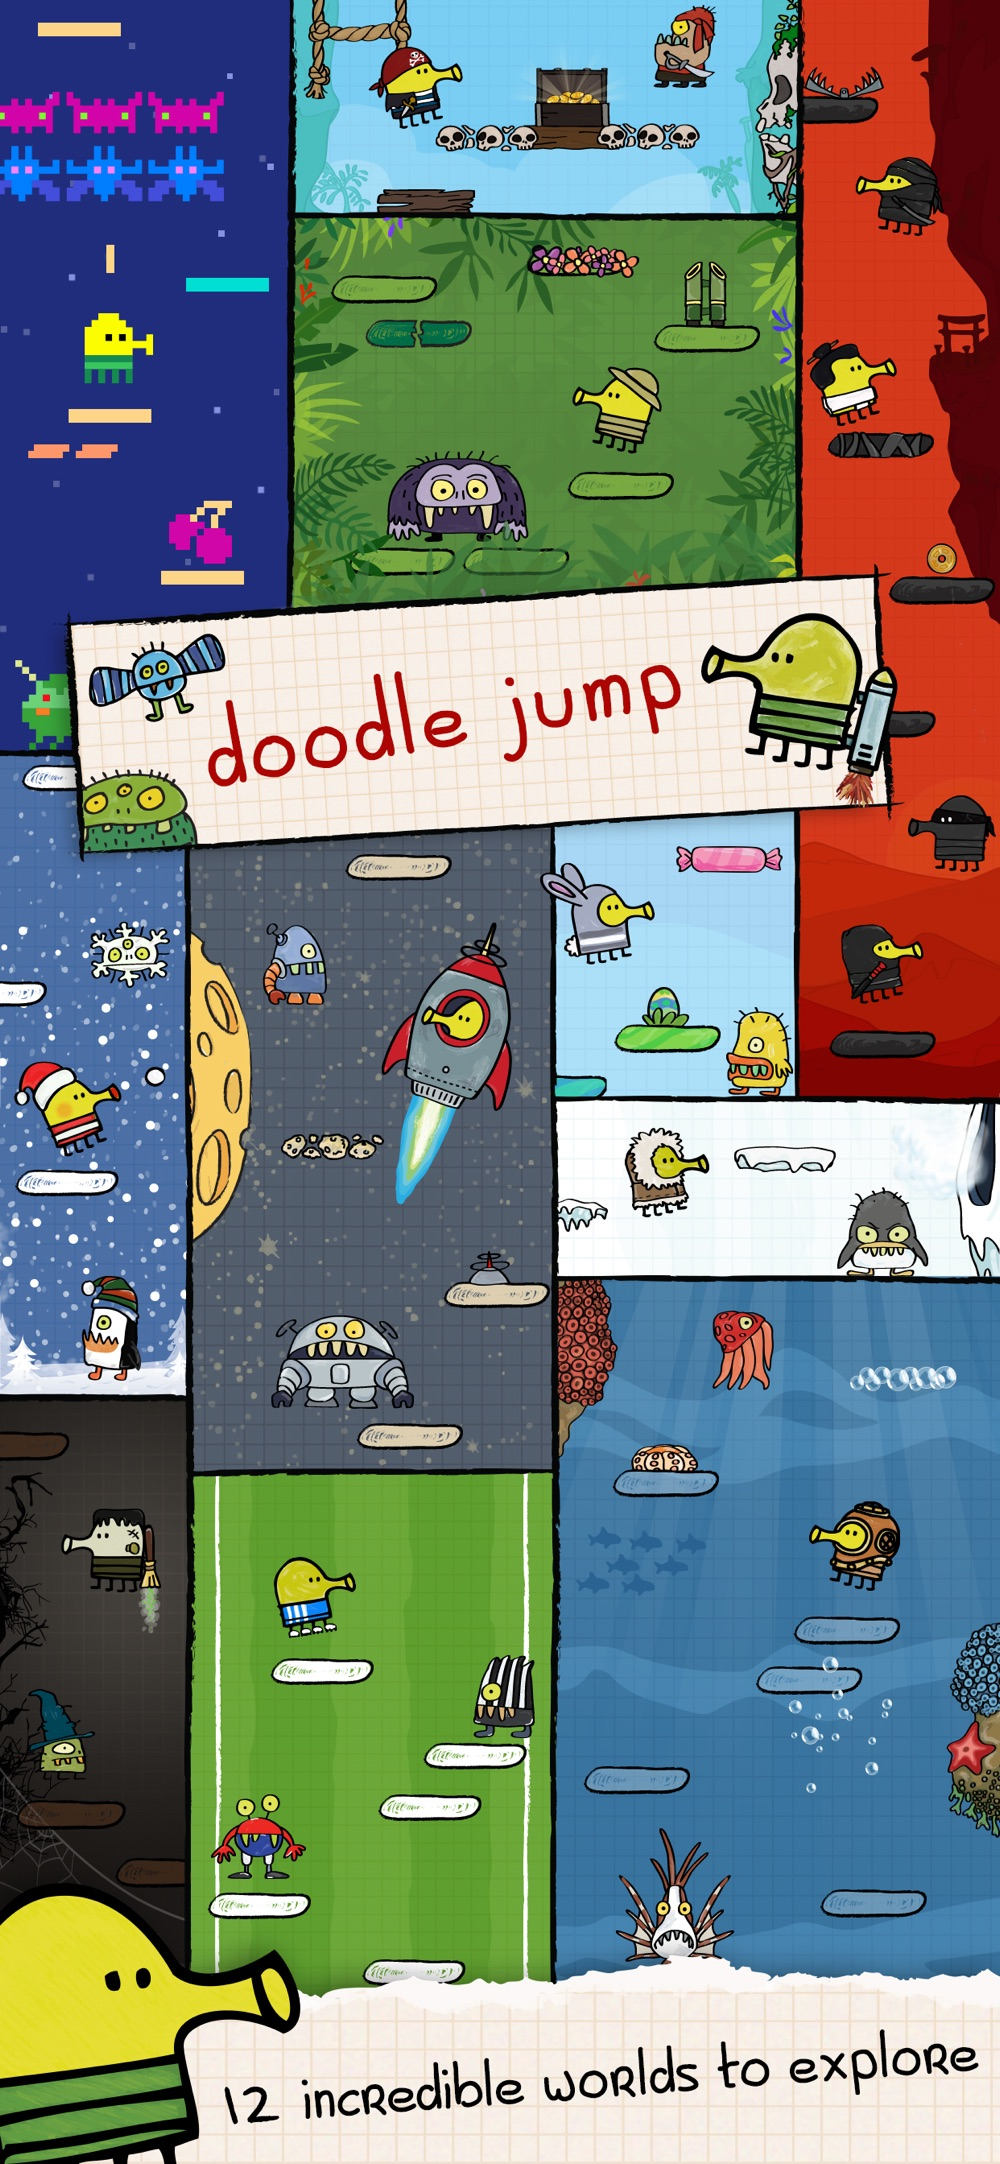 Doodle Jump - Insanely Good! hack tool